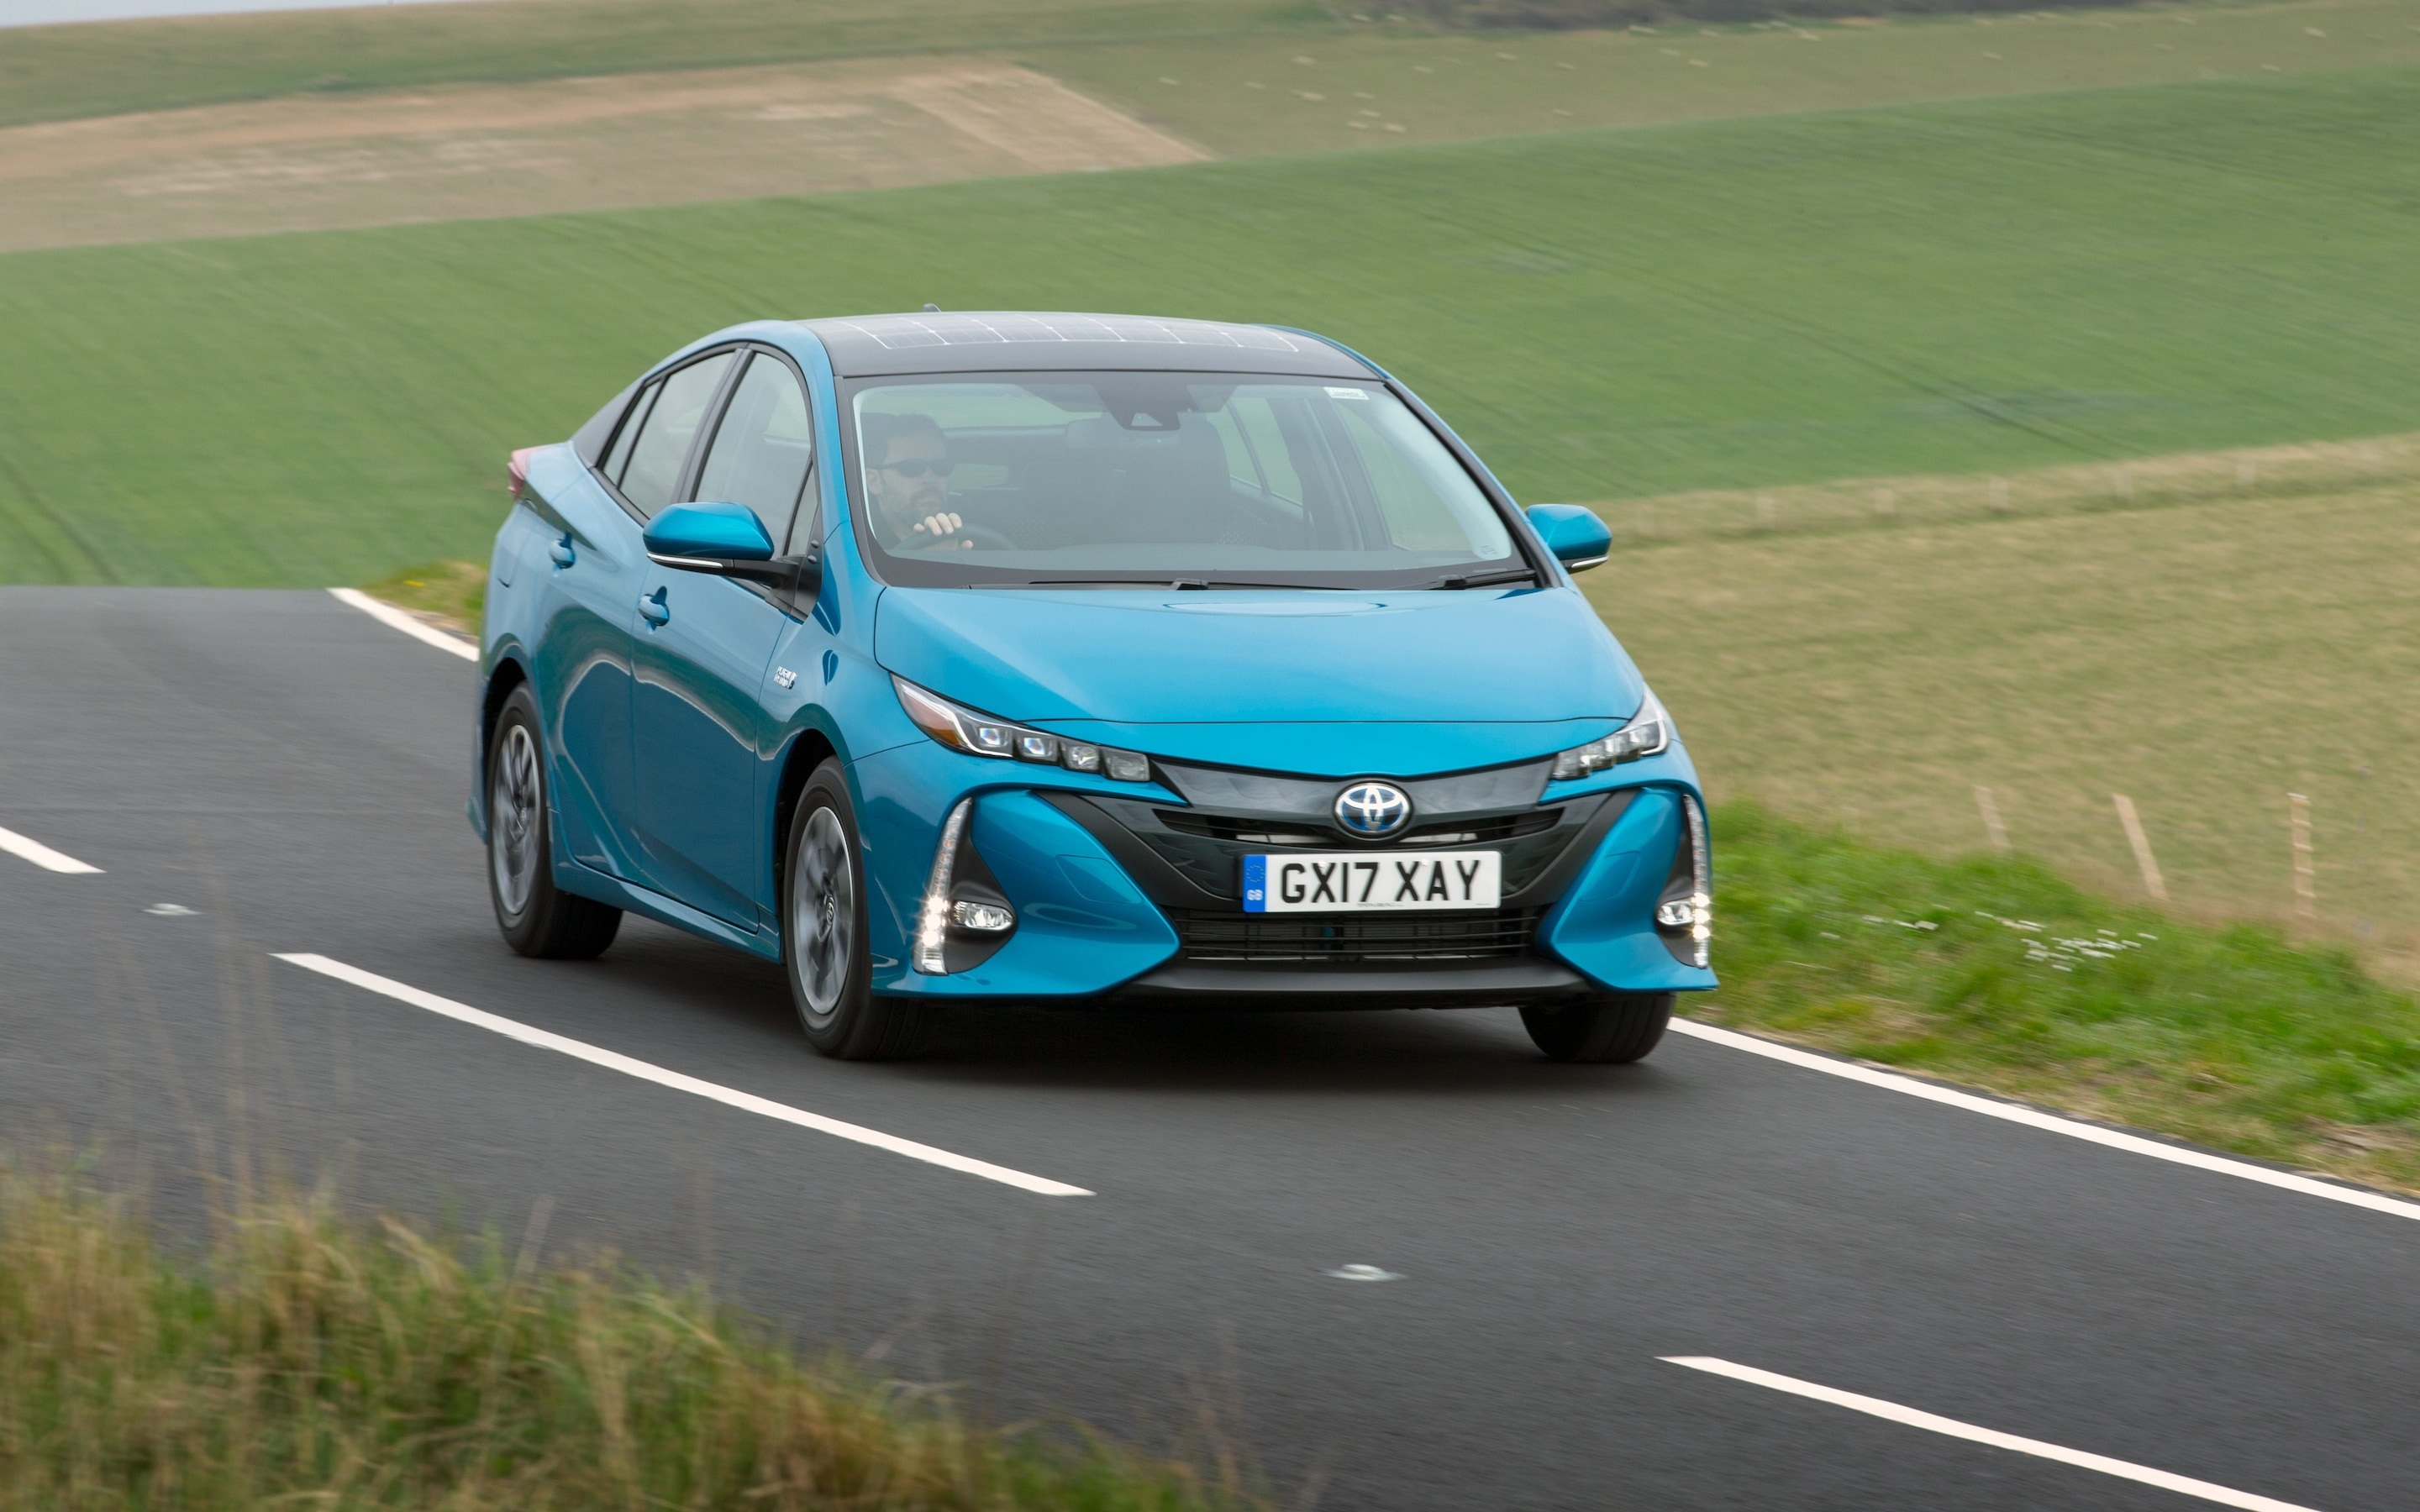 toyota prius review exceptional economy but is it still the toyota prius hybrid battery diagram as well toyota prius c battery [ 2880 x 1800 Pixel ]